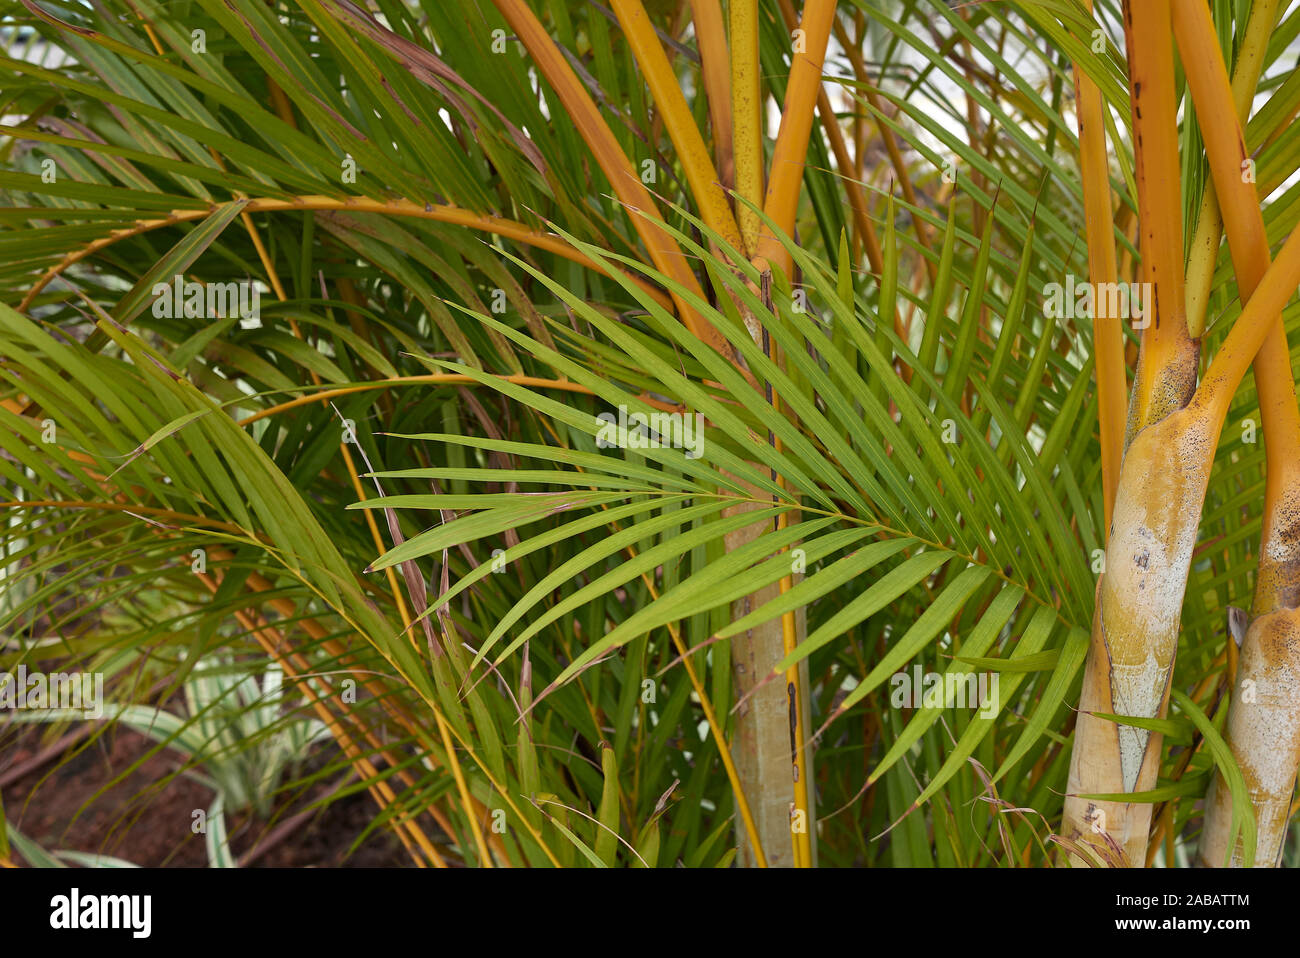 Dypsis Lutescens High Resolution Stock Photography And Images Alamy